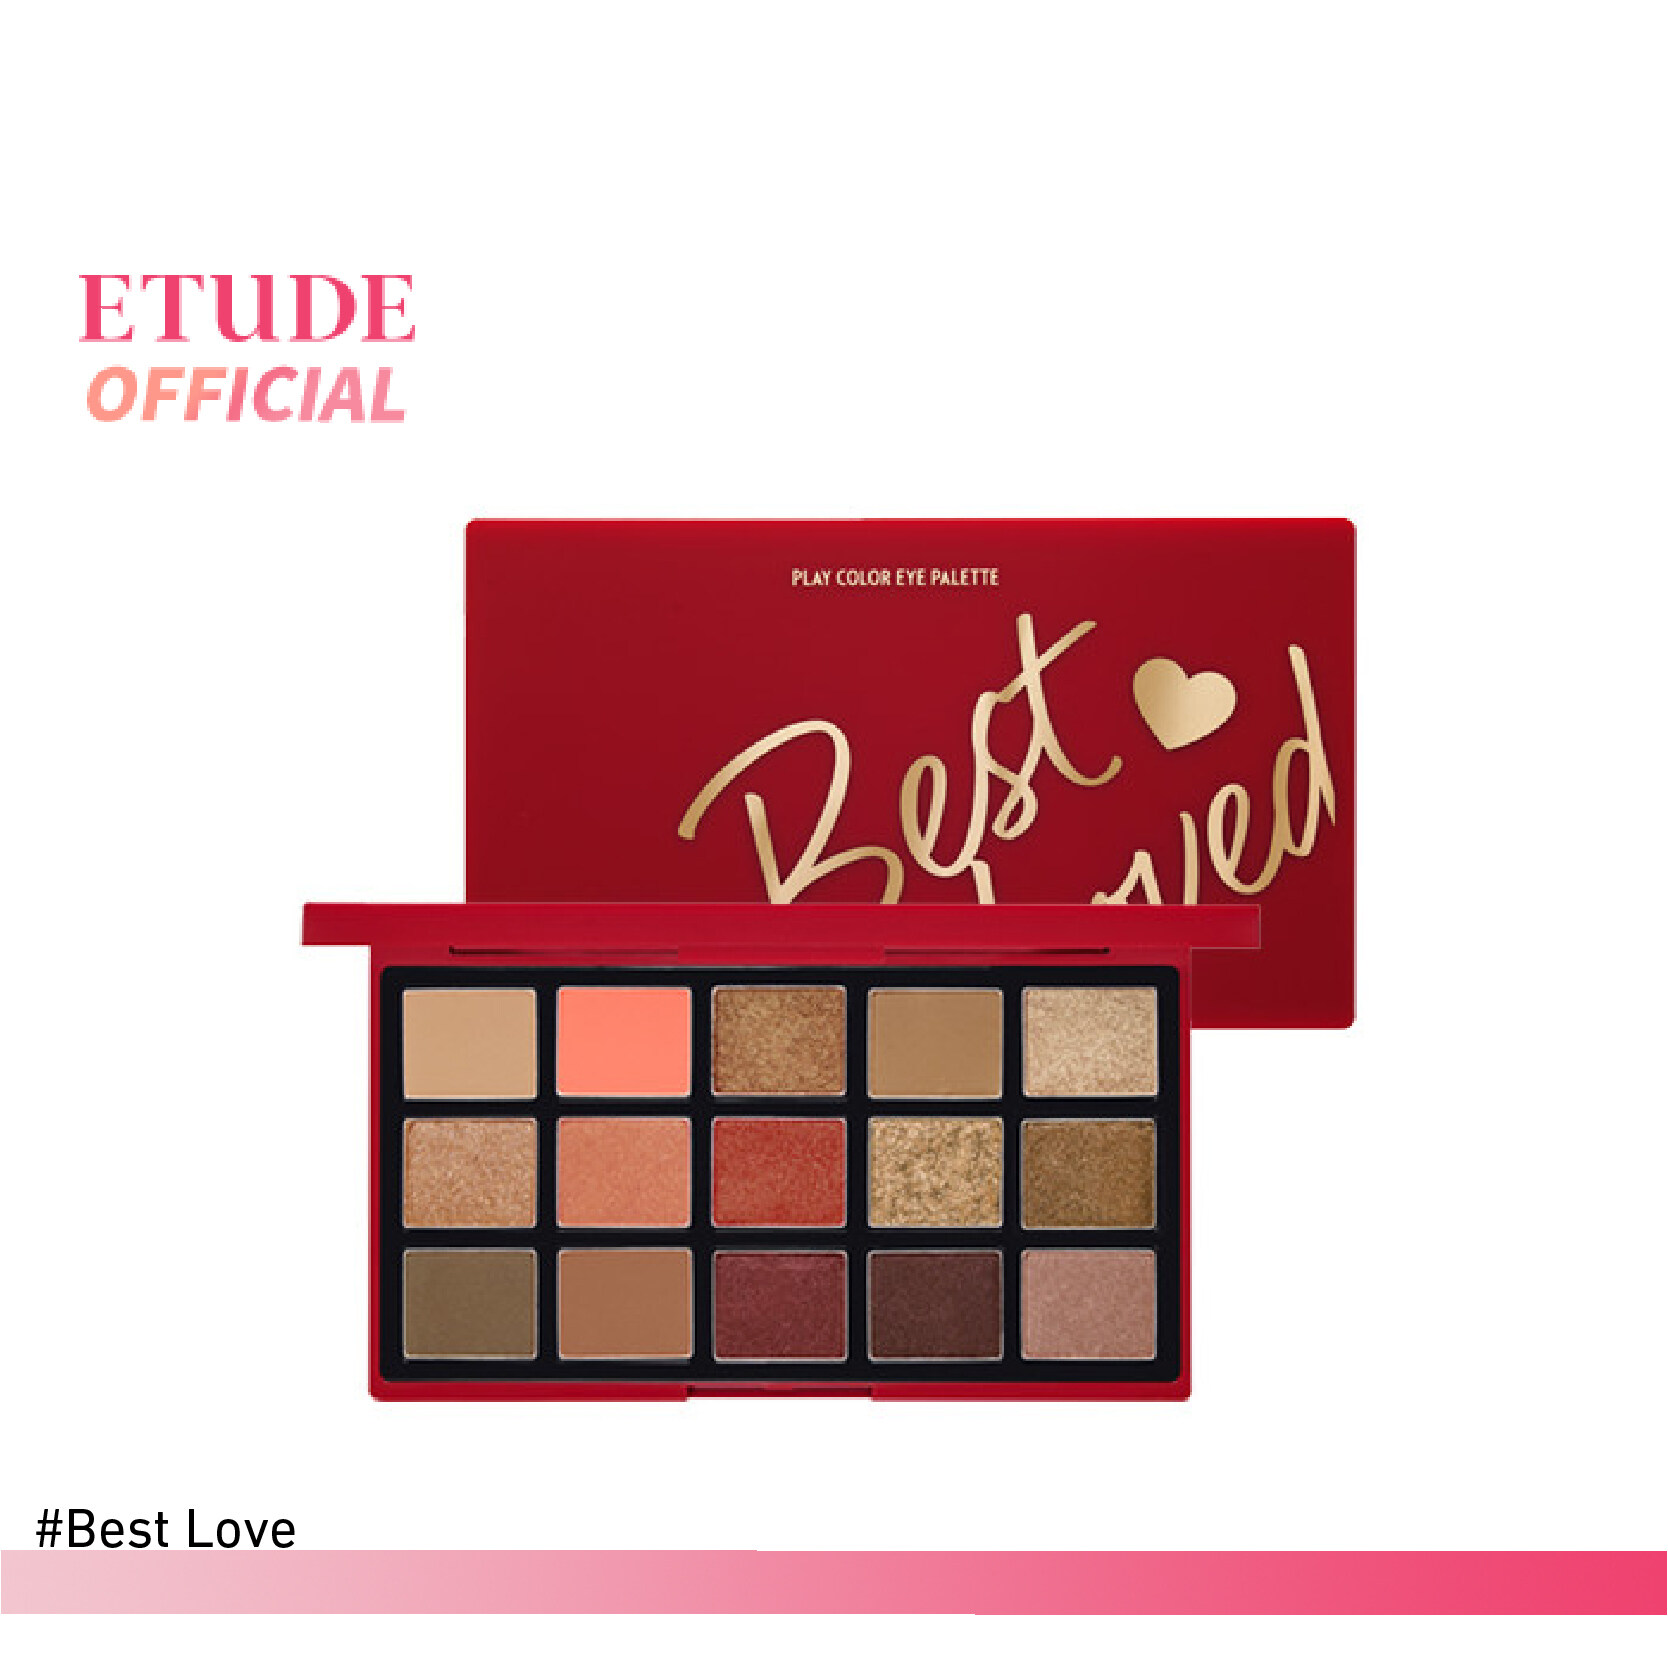 Etude Play Color Eye Palette Best Loved (1 G X 15 Colors).